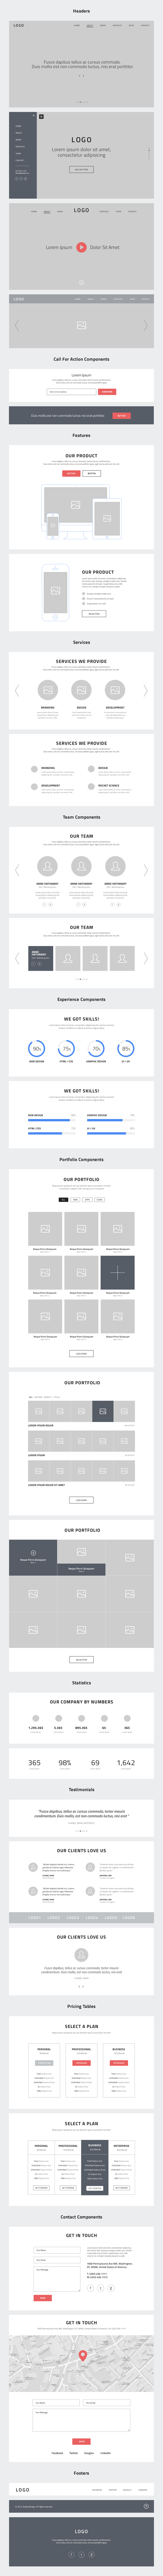 One-Page-Website-Wireframes-600